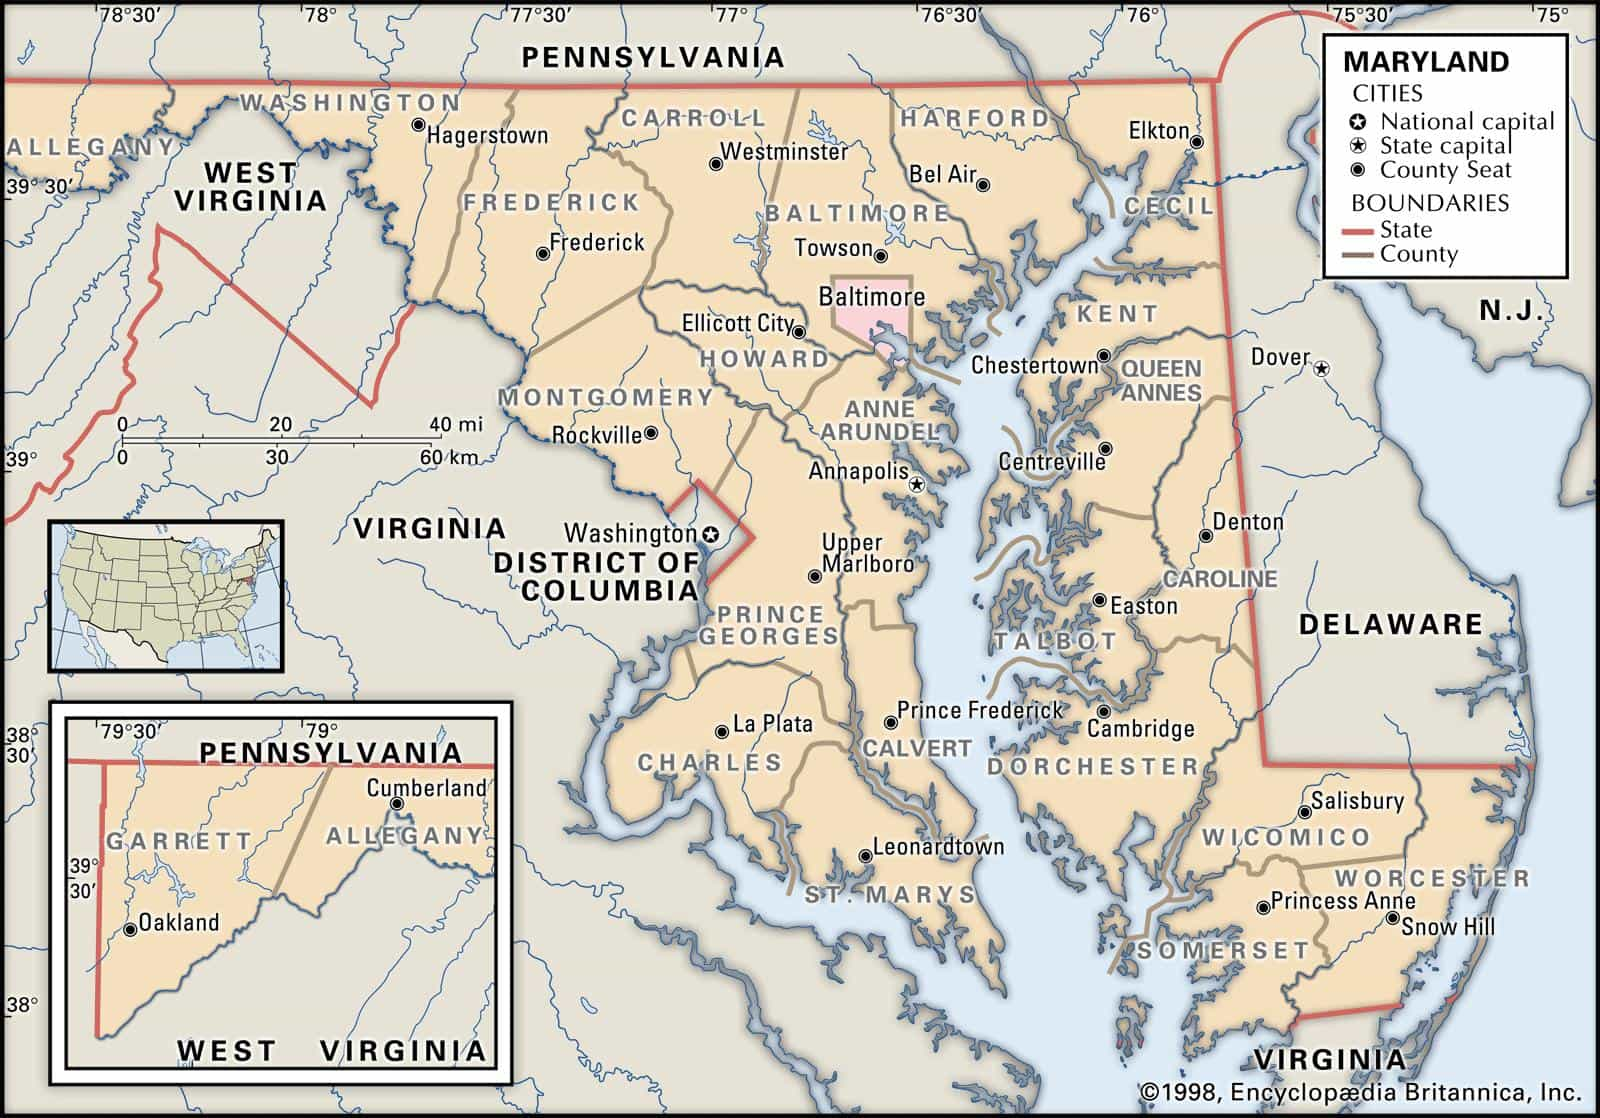 Historical Facts of Maryland Counties Guide